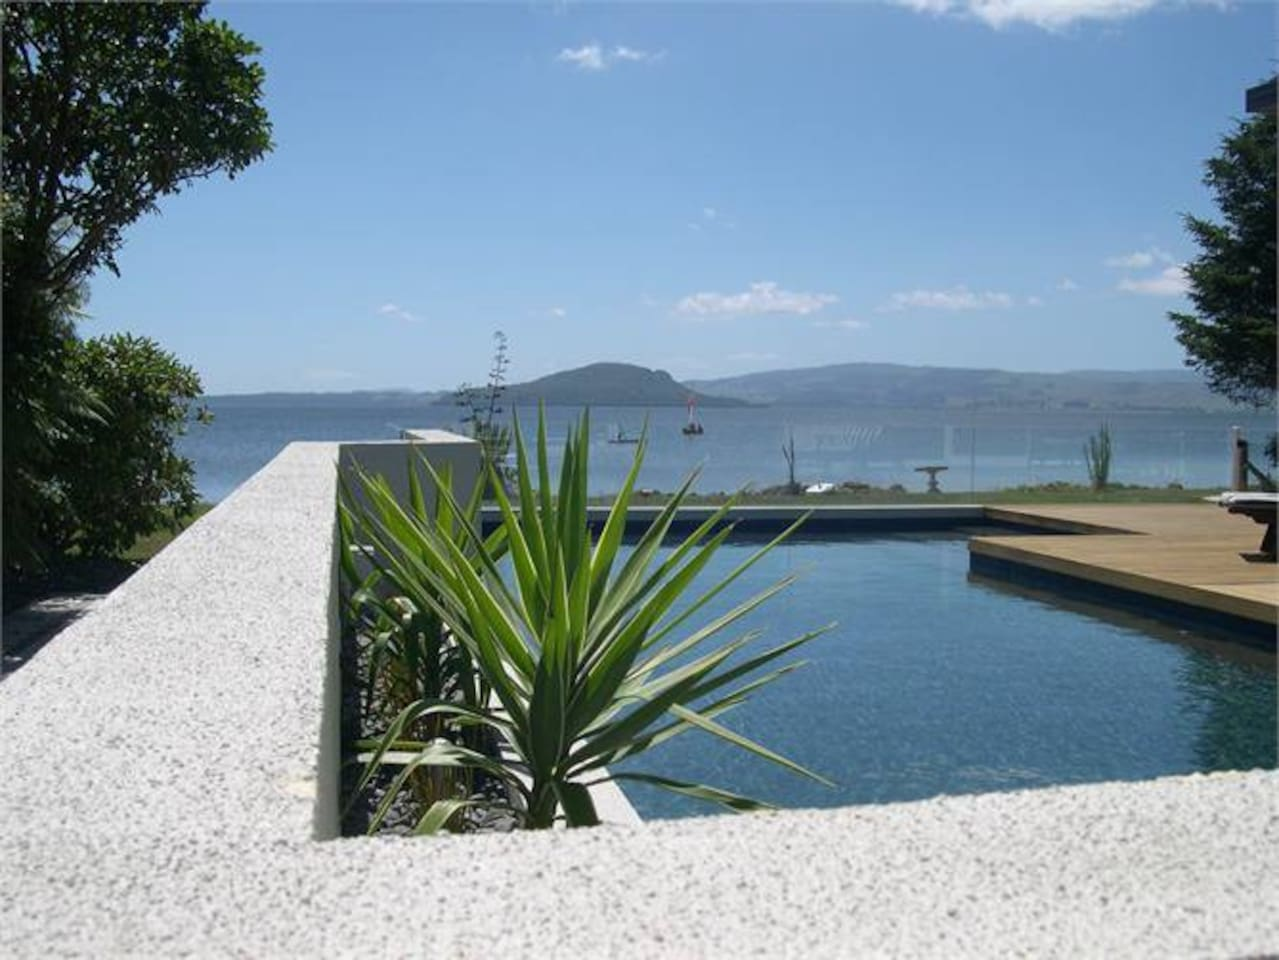 looking out over the pool as you walk down to the lake